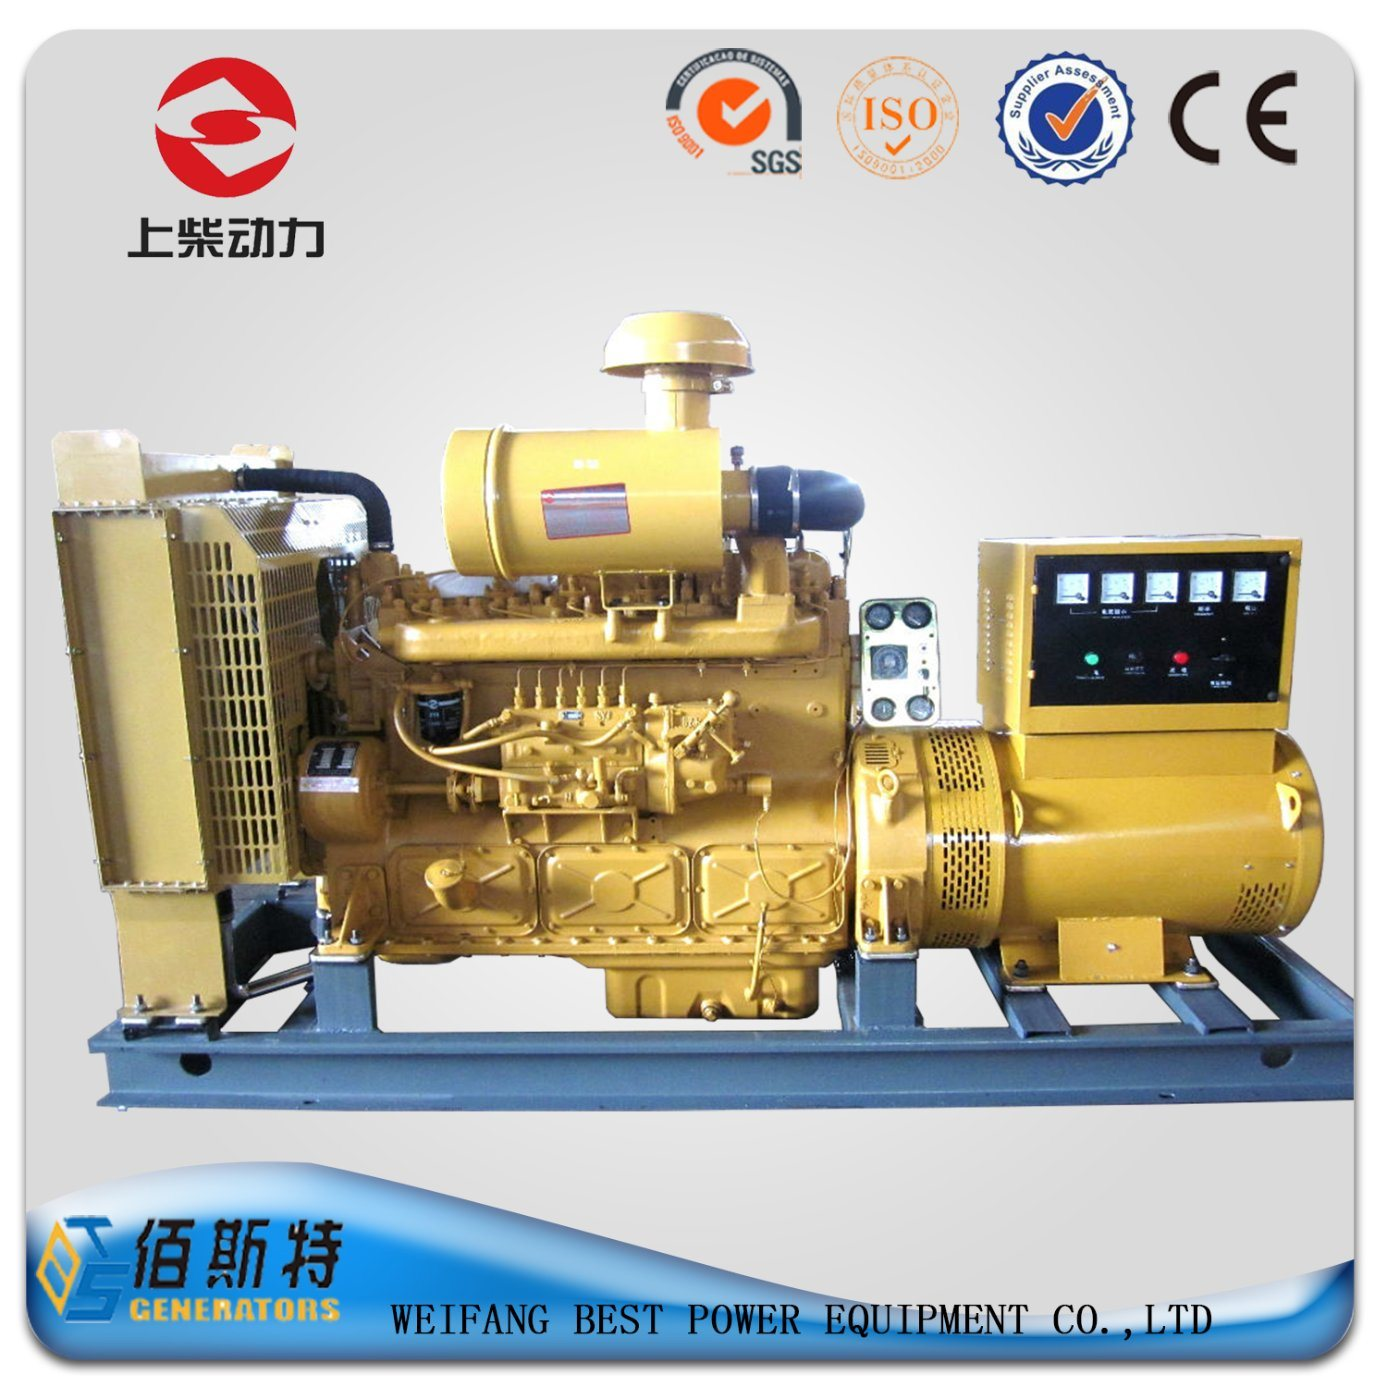 China 250kw Shangchai Engine Industrial Genset for Sale S1